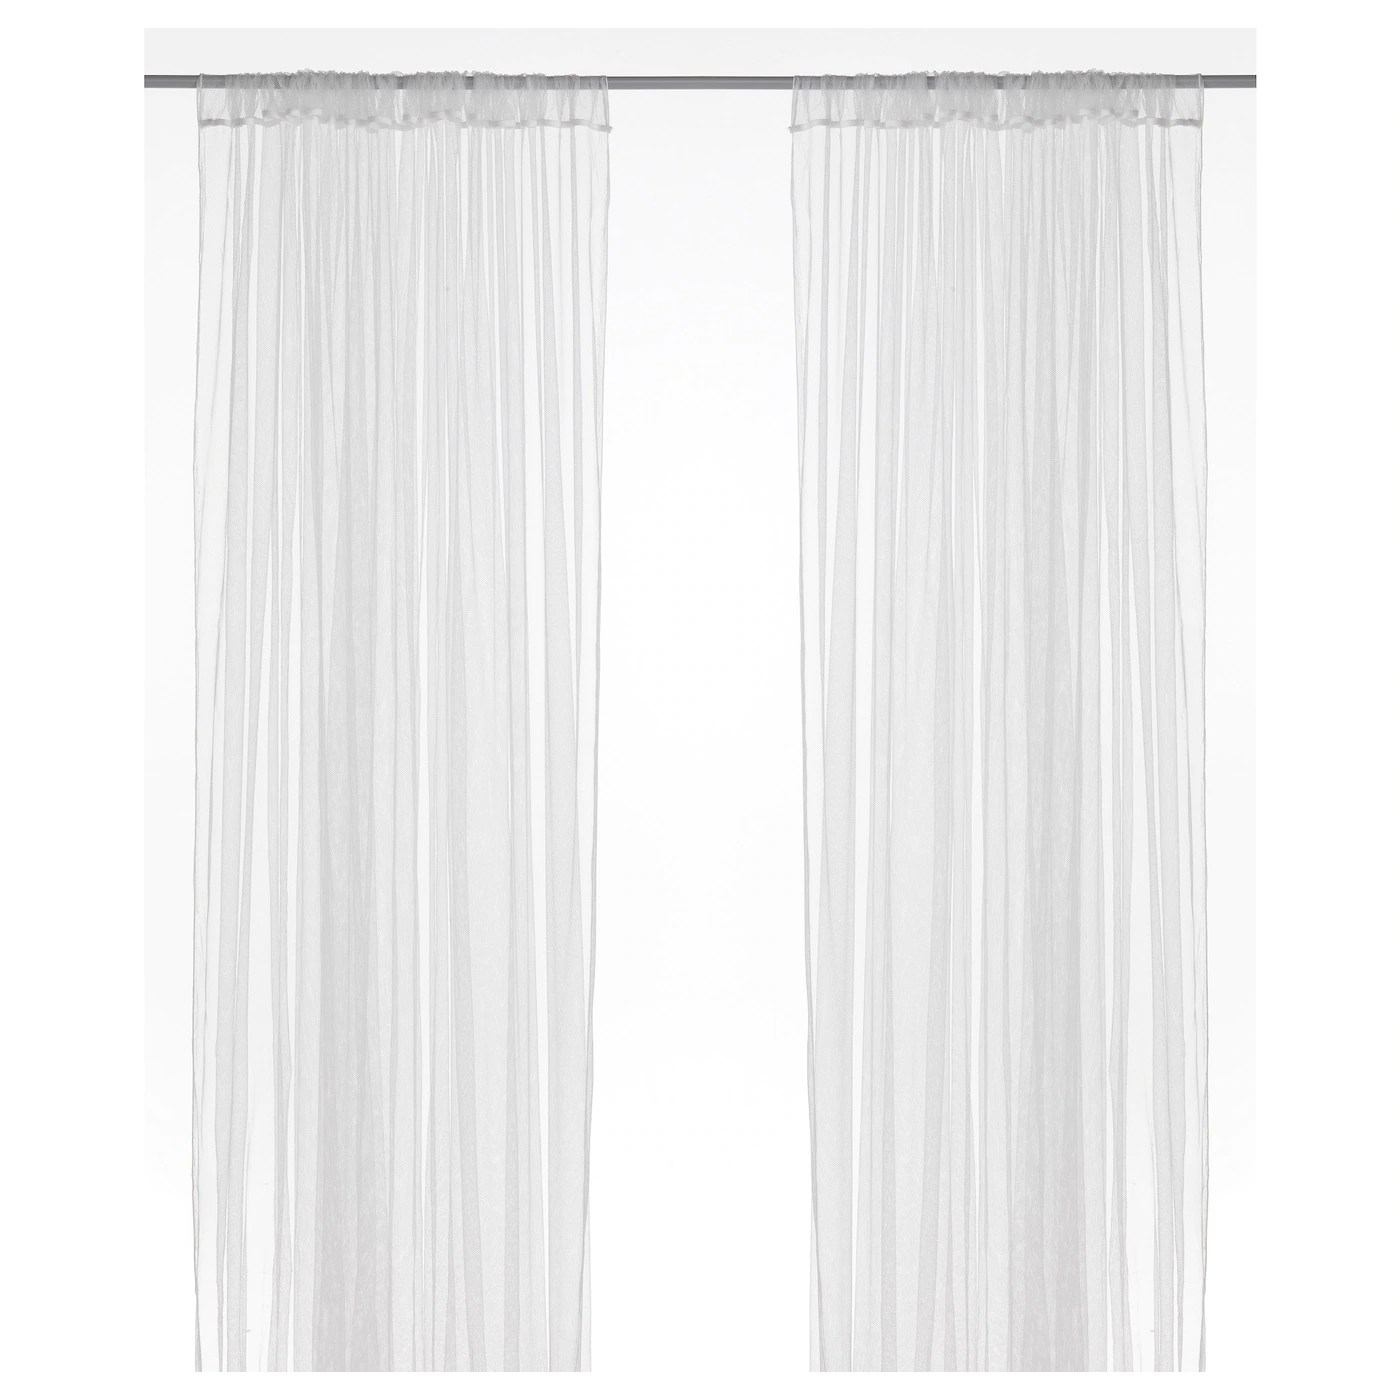 Transparant Plastic Gordijn Ikea Curtains Net Blackout And Ready Made Curtains At